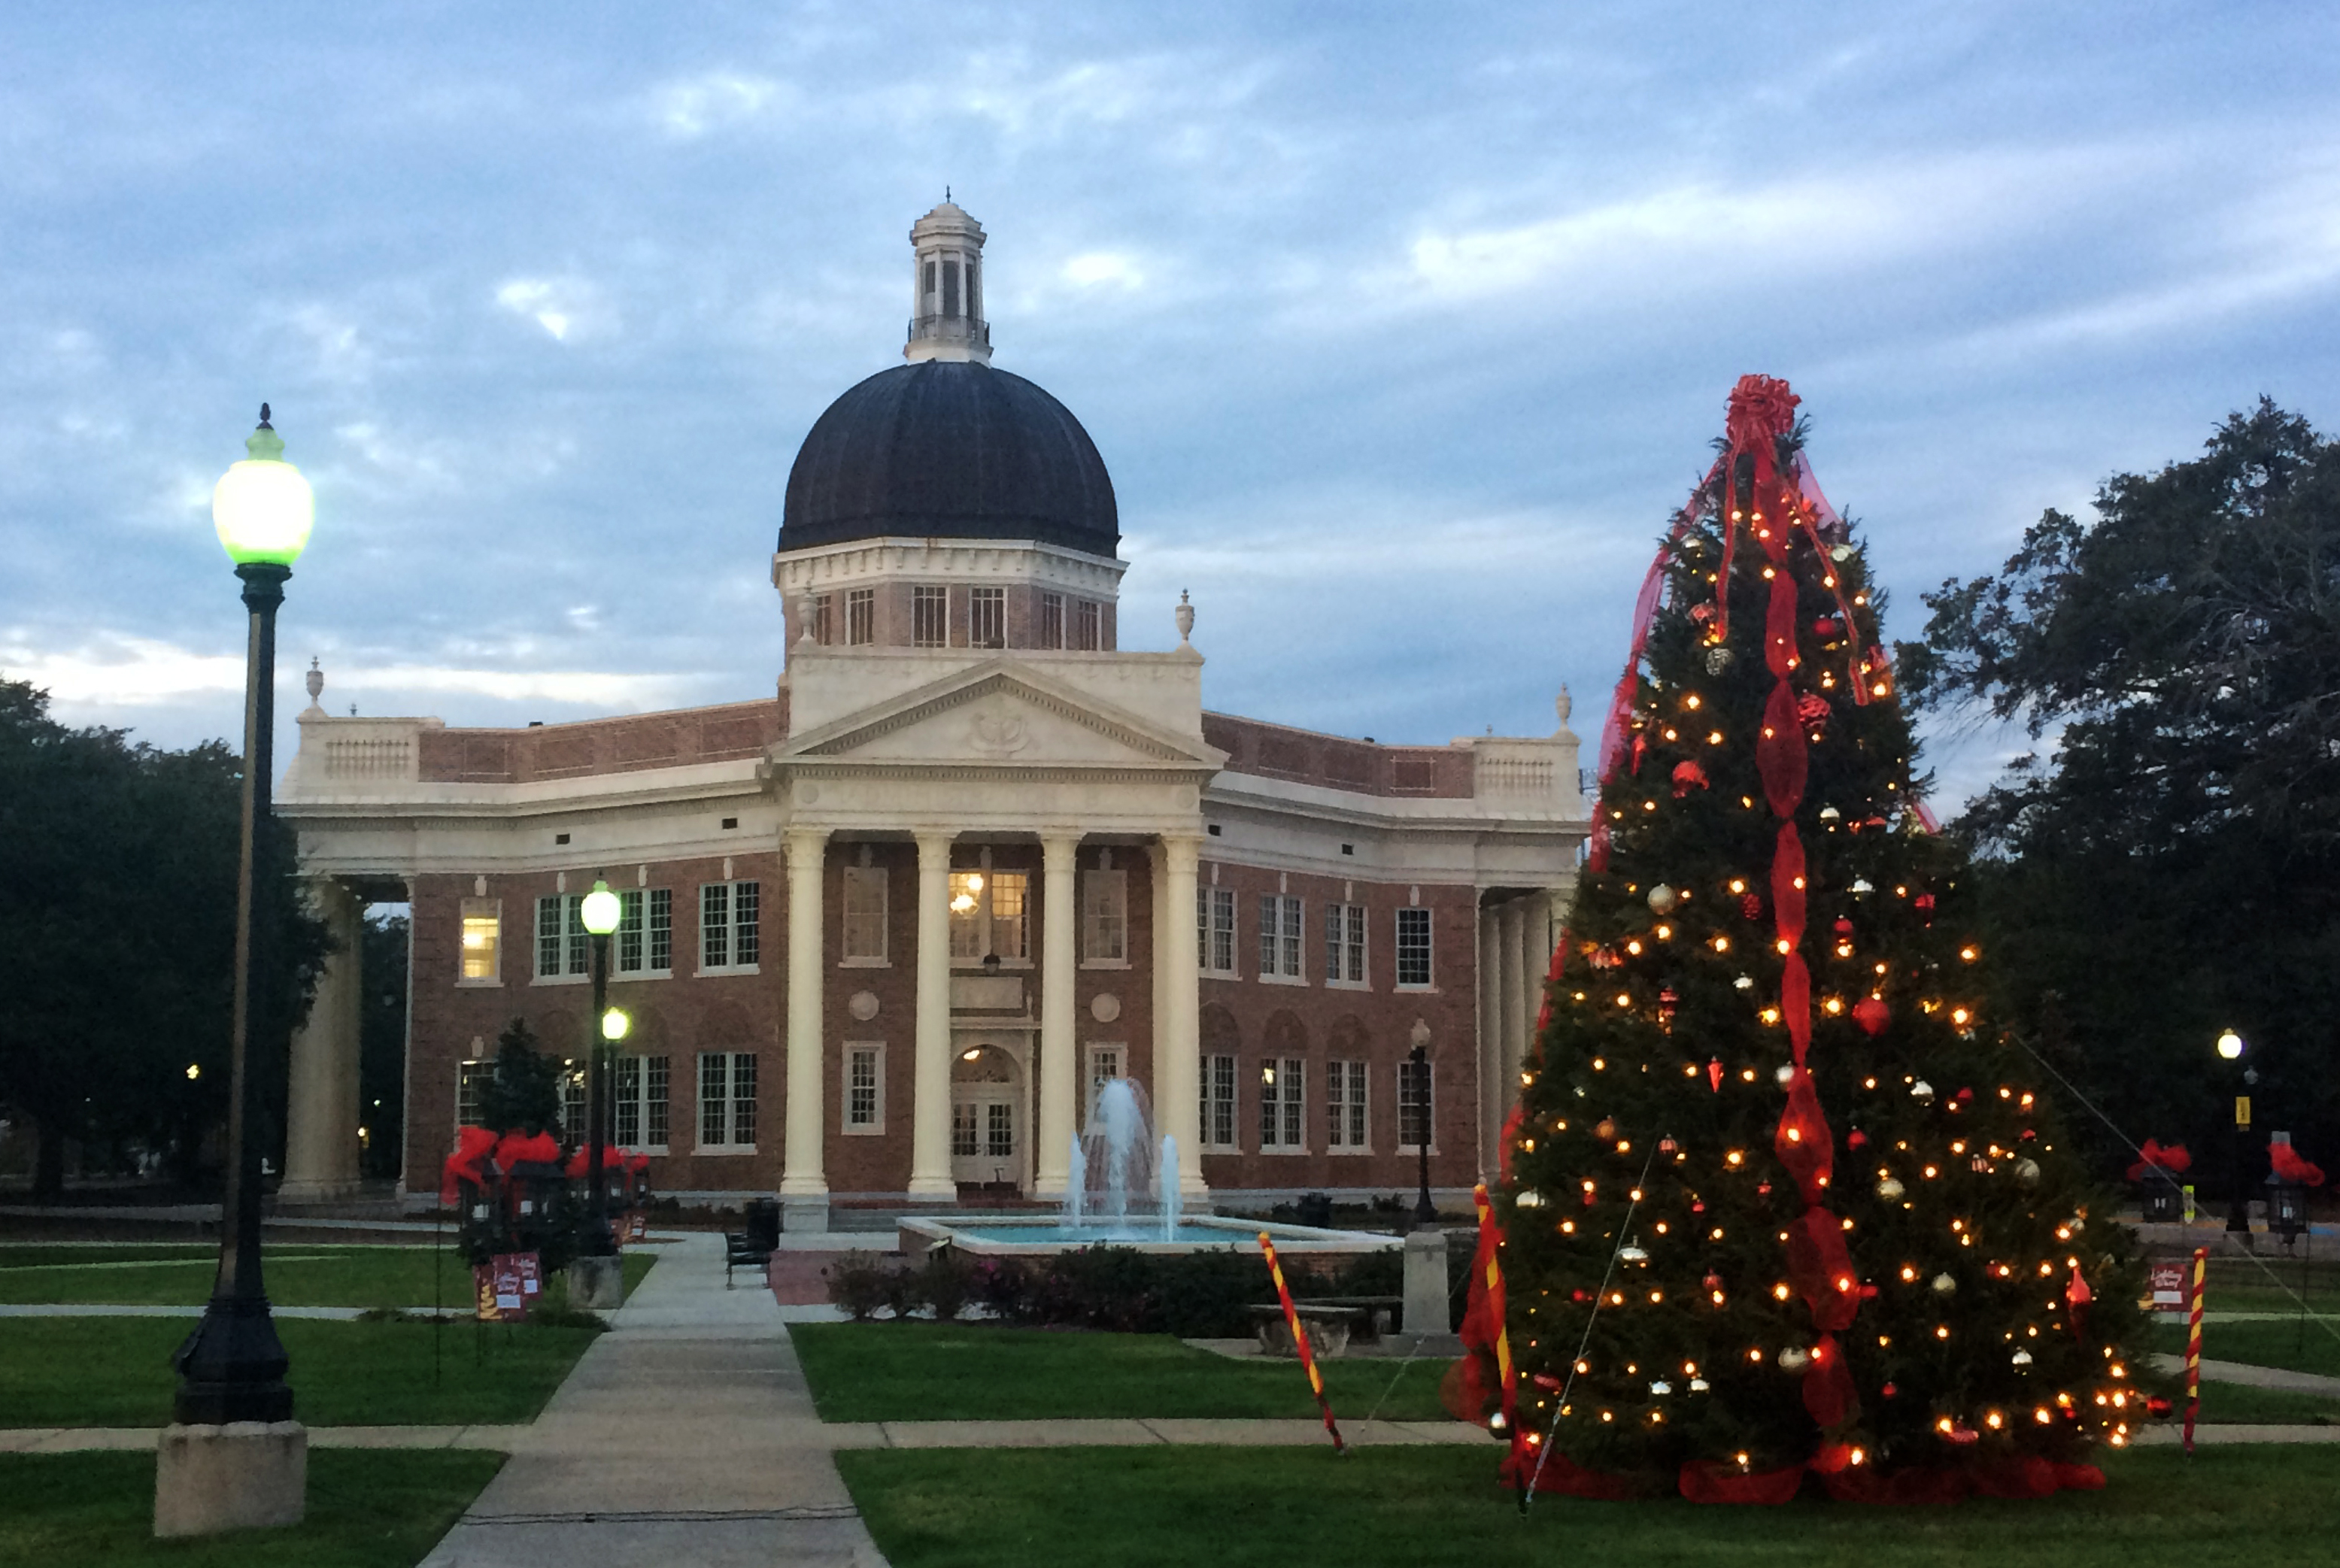 Lighting the Way brings Christmas spirit to campus